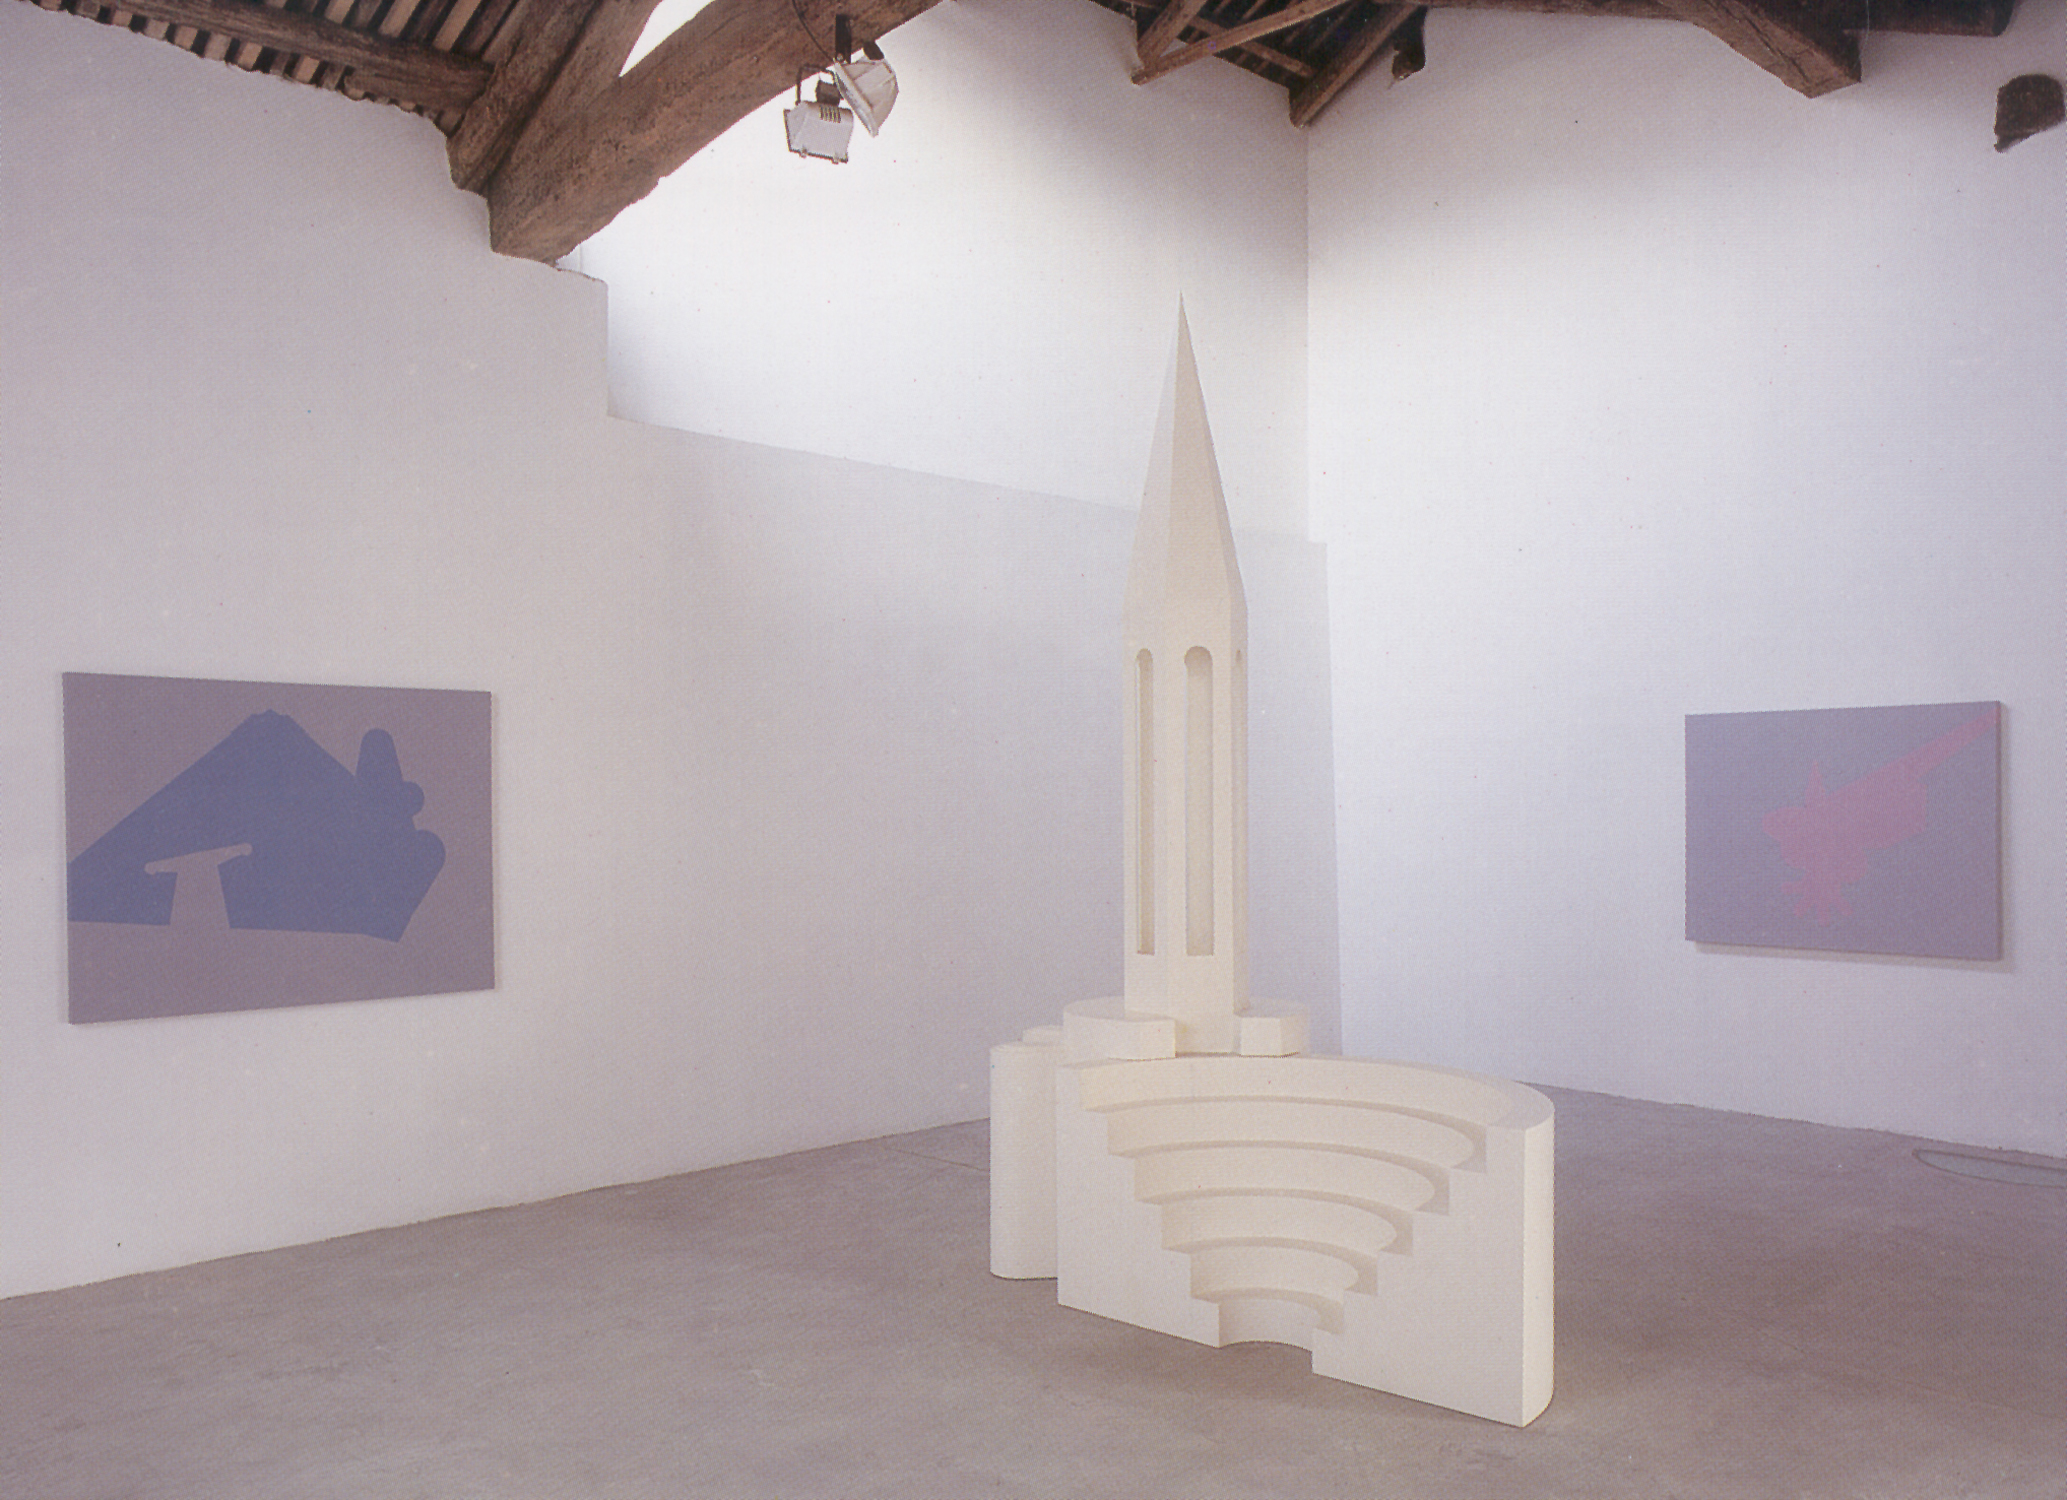 Reconfigured Monuments, 2001, sculpture: painted wood, 210 x 150 x 270 cm and three paintings: acrylic on canvas,140 x 110 cm. Installation view, Marco Noire Contemporary Arts Gallery, Turin, Italy, 2002. Courtesy: The Modern Art Gallery (GAM), Turin, Italy